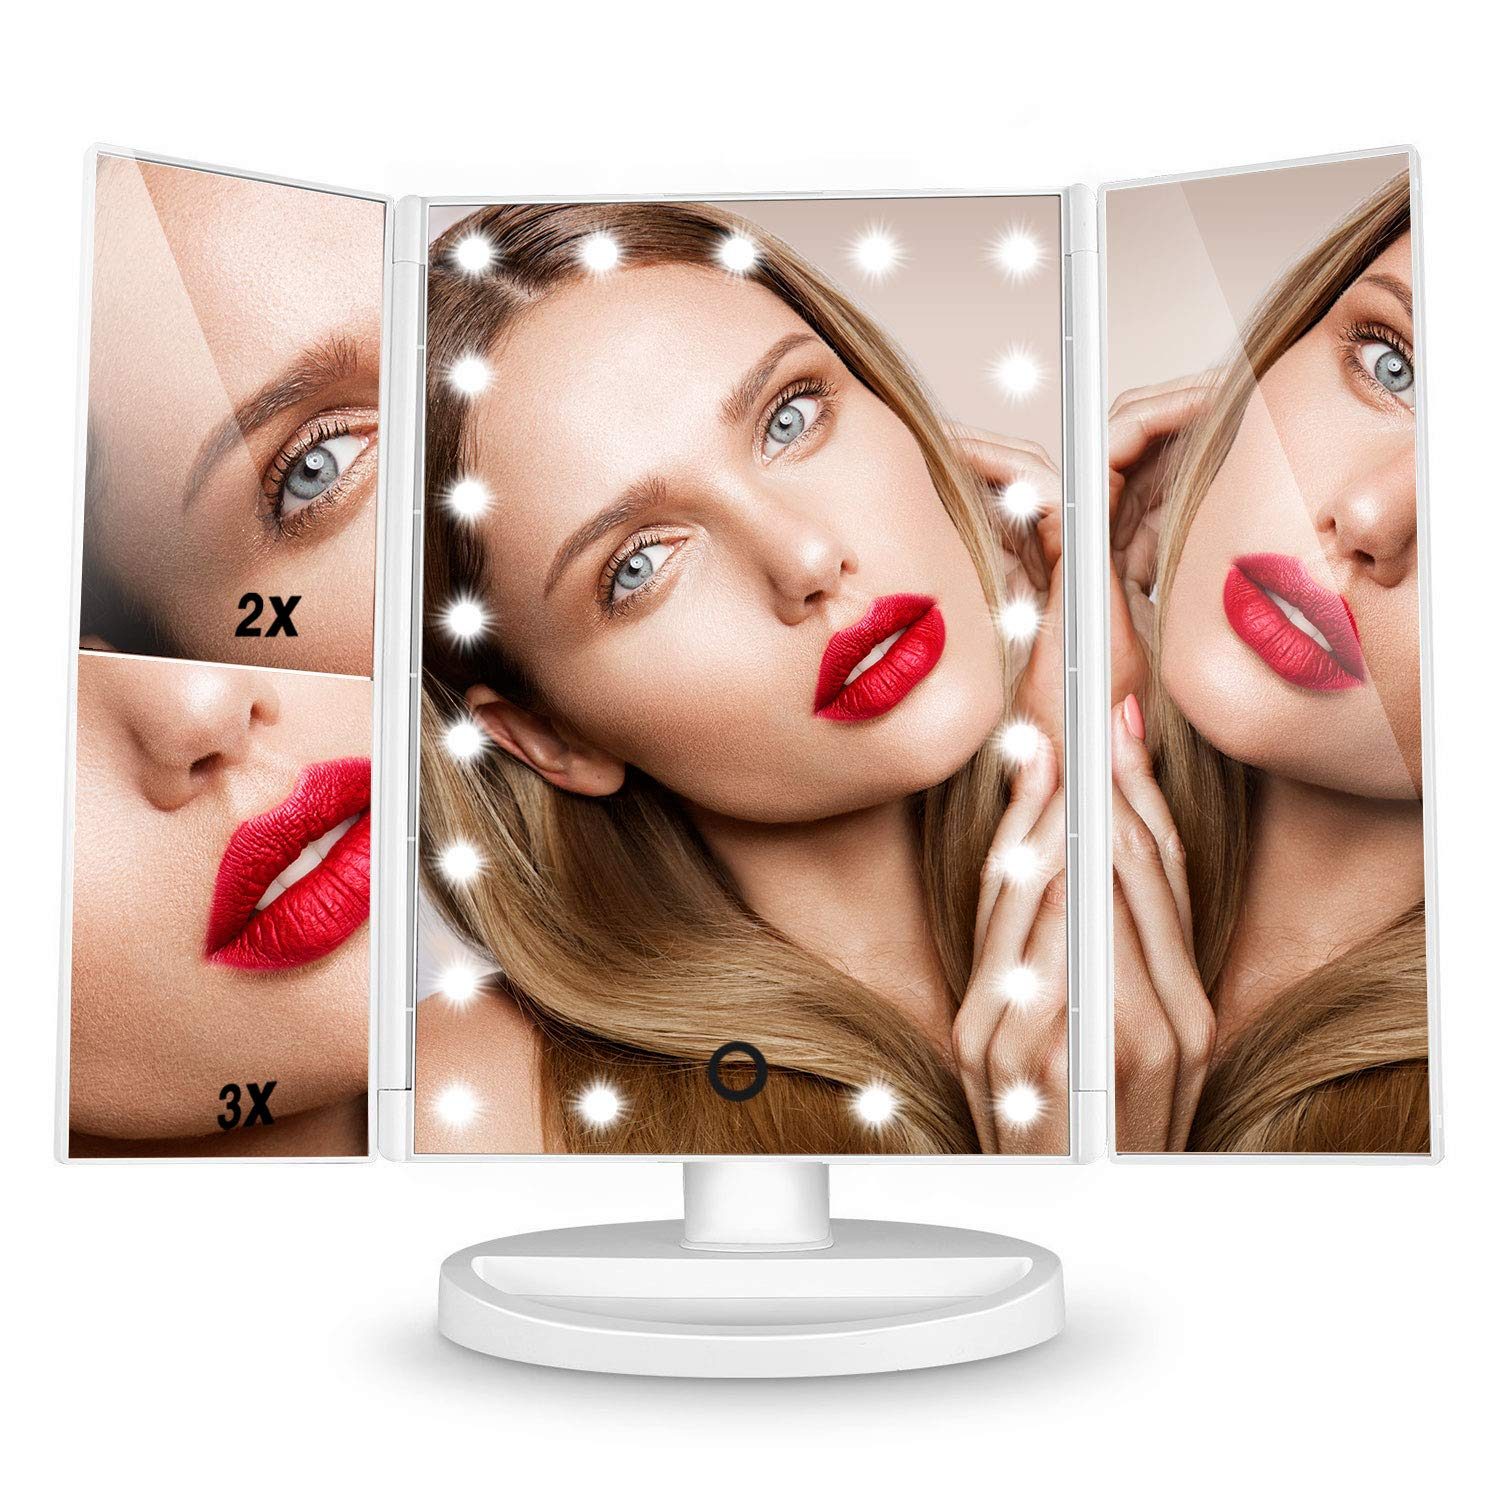 HAMSWAN Makeup Mirror, Magnification Vanity Make up Mirror 21 LED Lights Illuminated Tri-Fold 1x 2x 3x Mirrors, Touch-Screen Light, 180° Rotation, Travel Cosmetic Light Up Magnifying Mirror, White SM217-DL-CW-EU